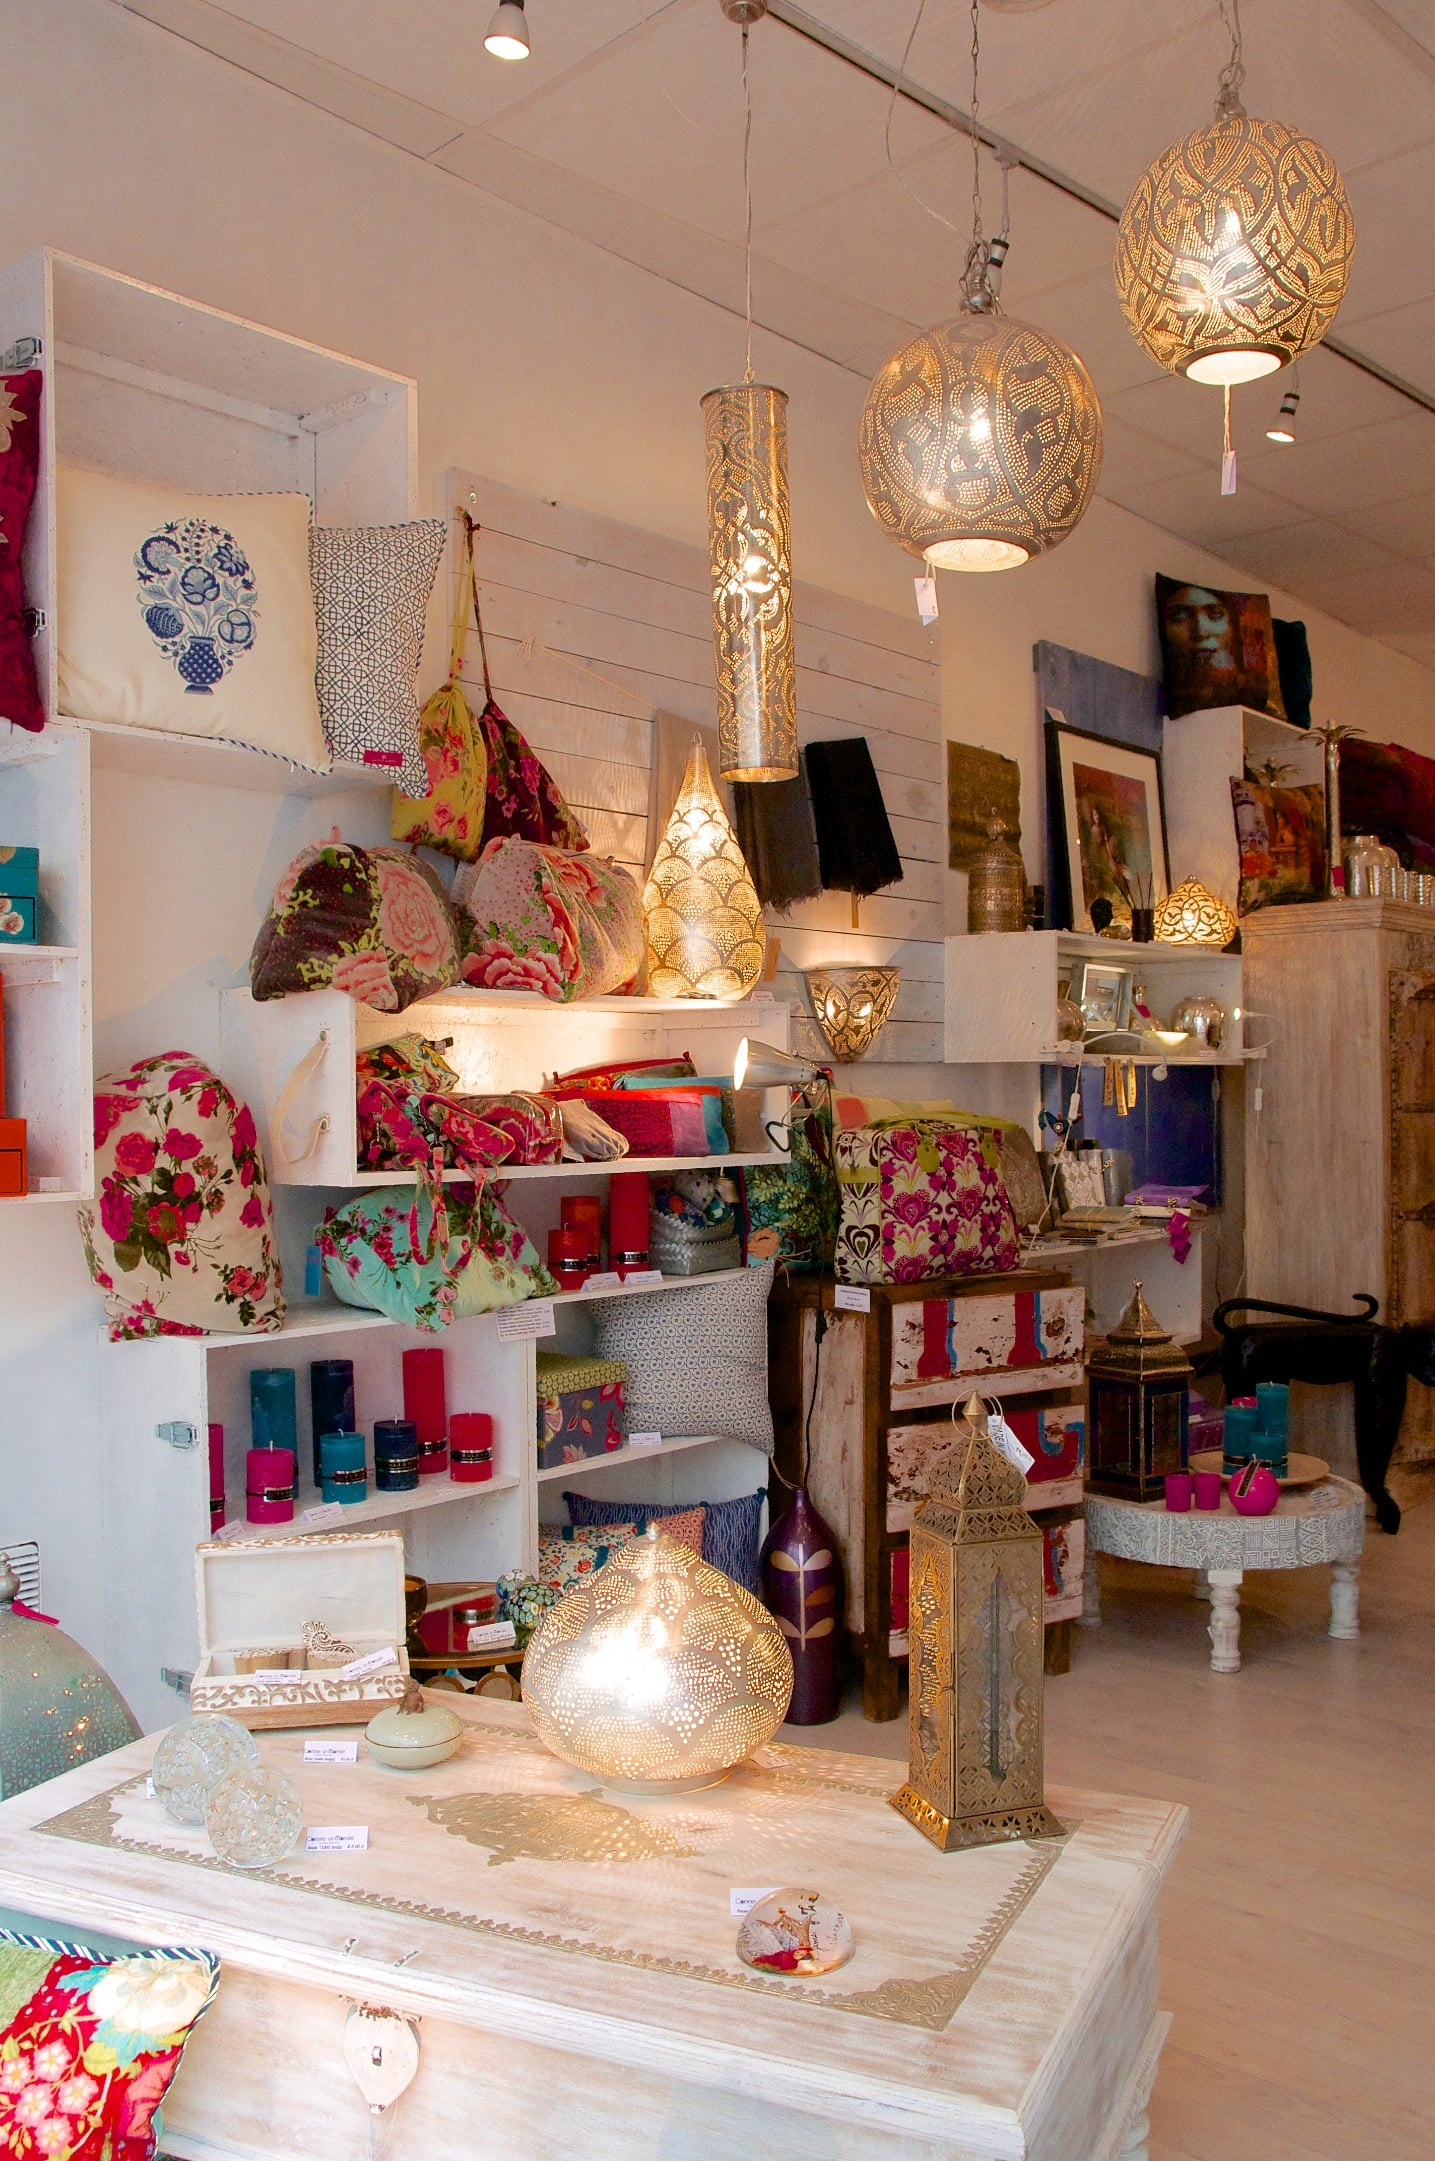 Boutique Comme un monde à Saint-Germain-en-Laye